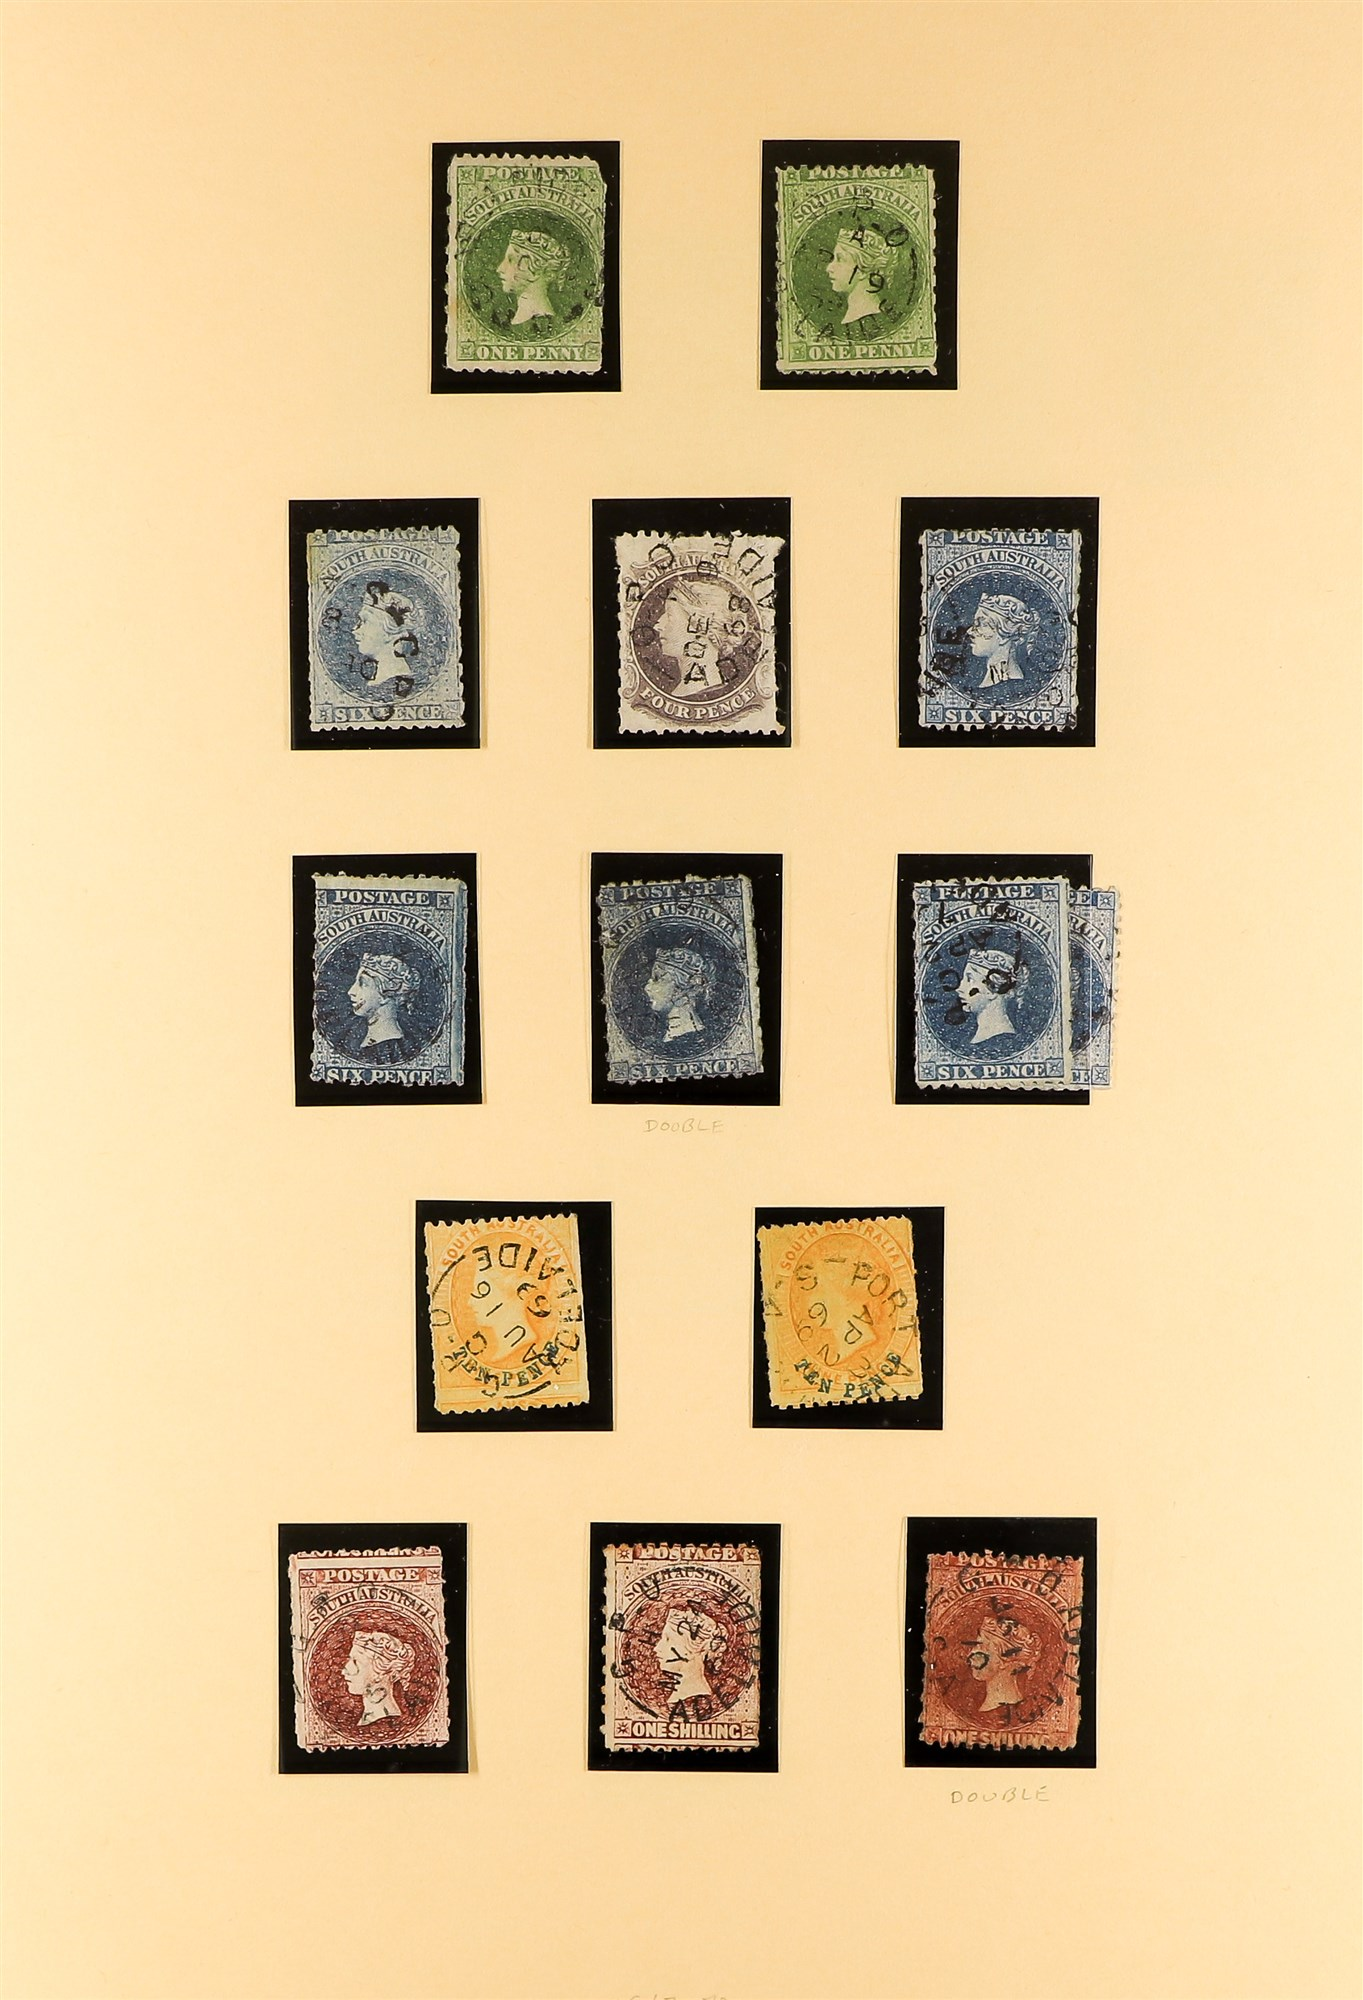 AUSTRALIAN STATES SOUTH AUSTRALIA 1858-1912 mainly used collection incl.1858-9 First Roulettes all - Image 5 of 10